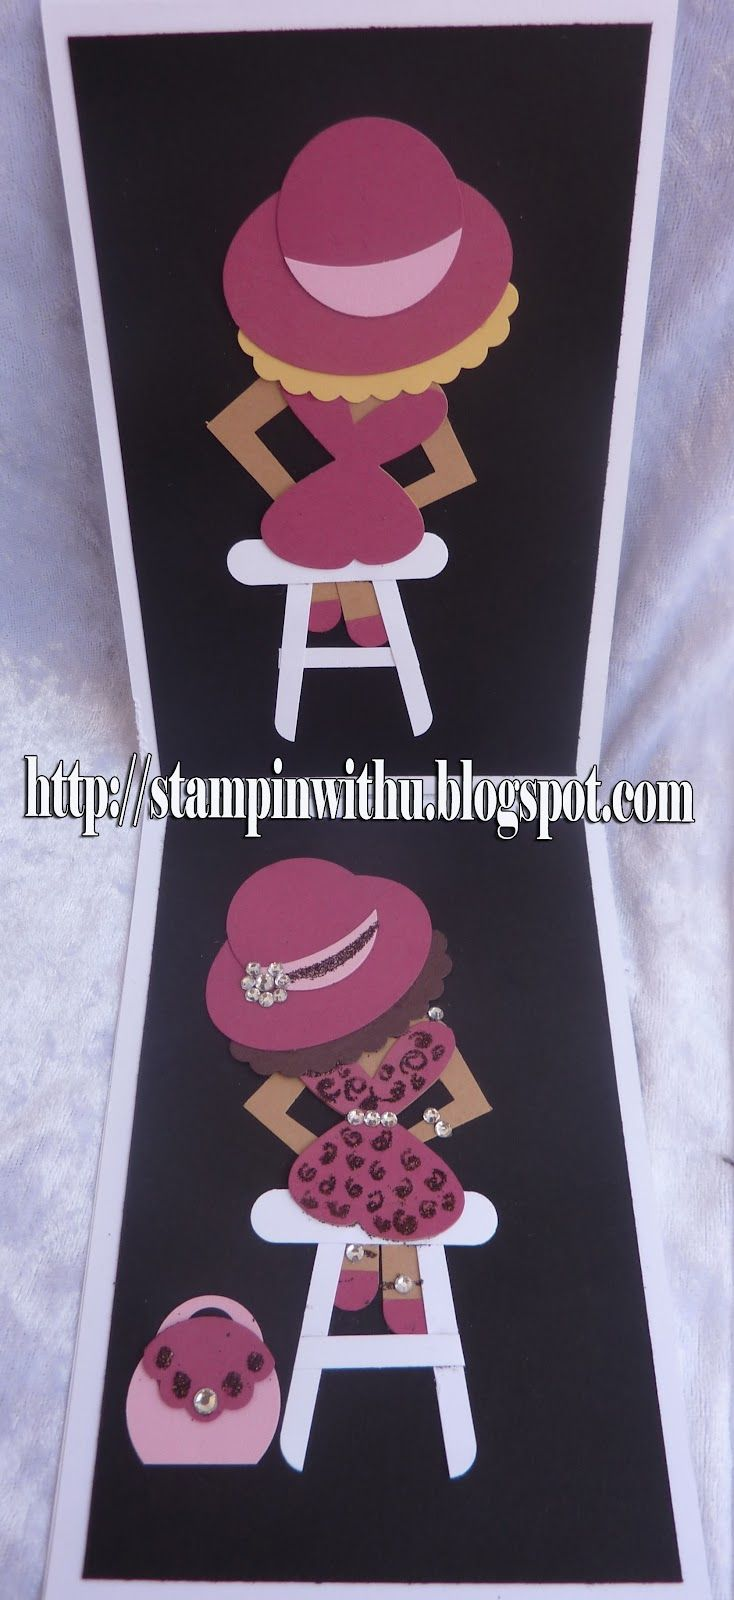 Stampin' with U: Punch Art Lady